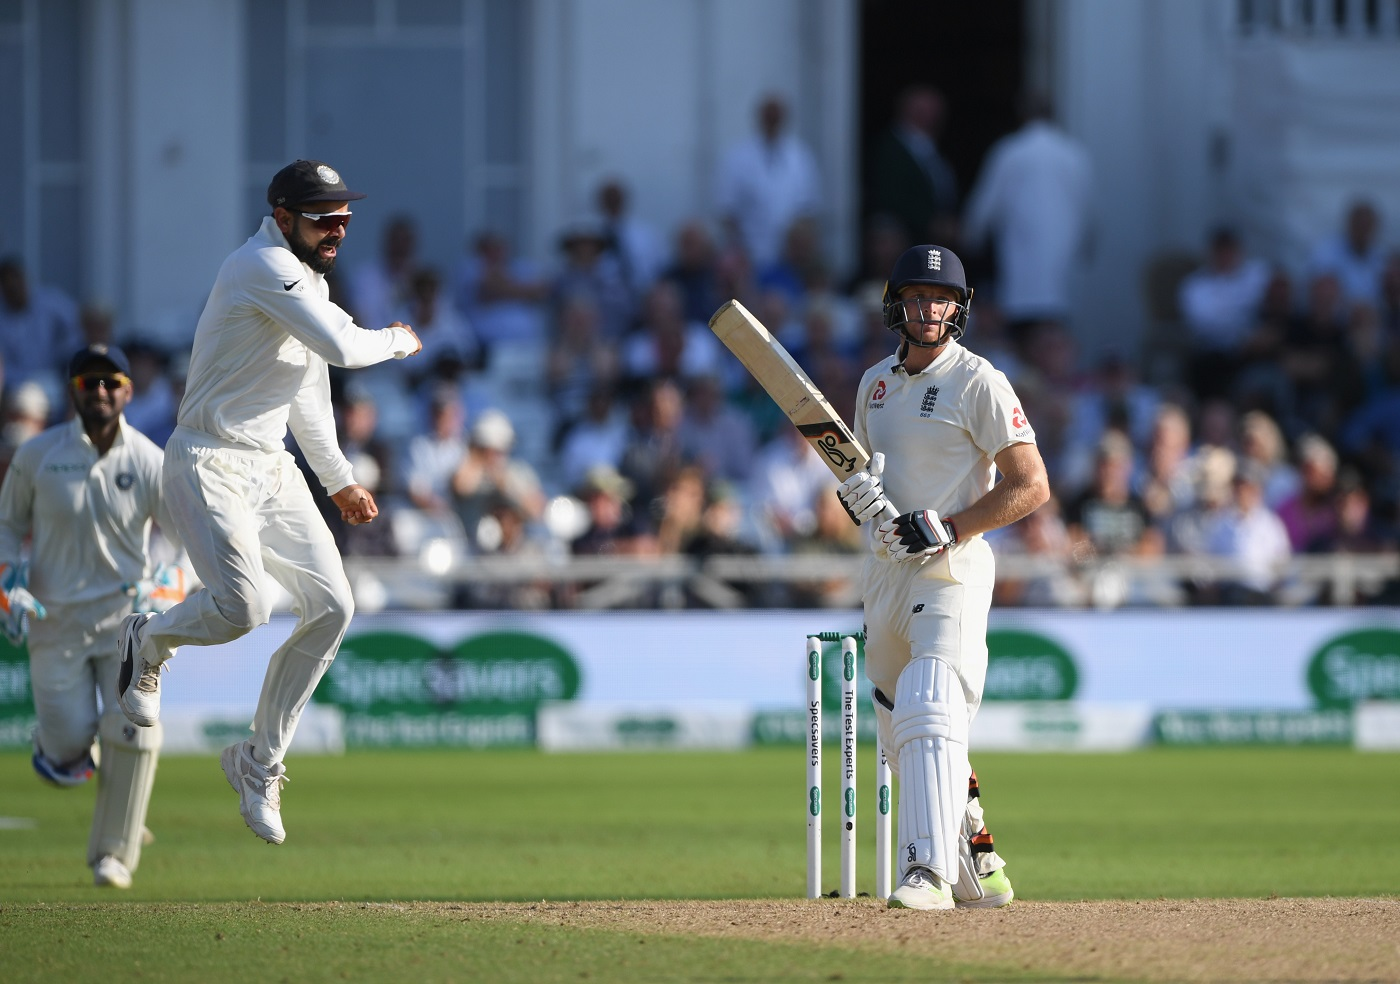 Virat Kohli Was Right In Sledging Stuart Broad After The Pacer's Send-Off To Rishabh Pant, Says Virender Sehwag